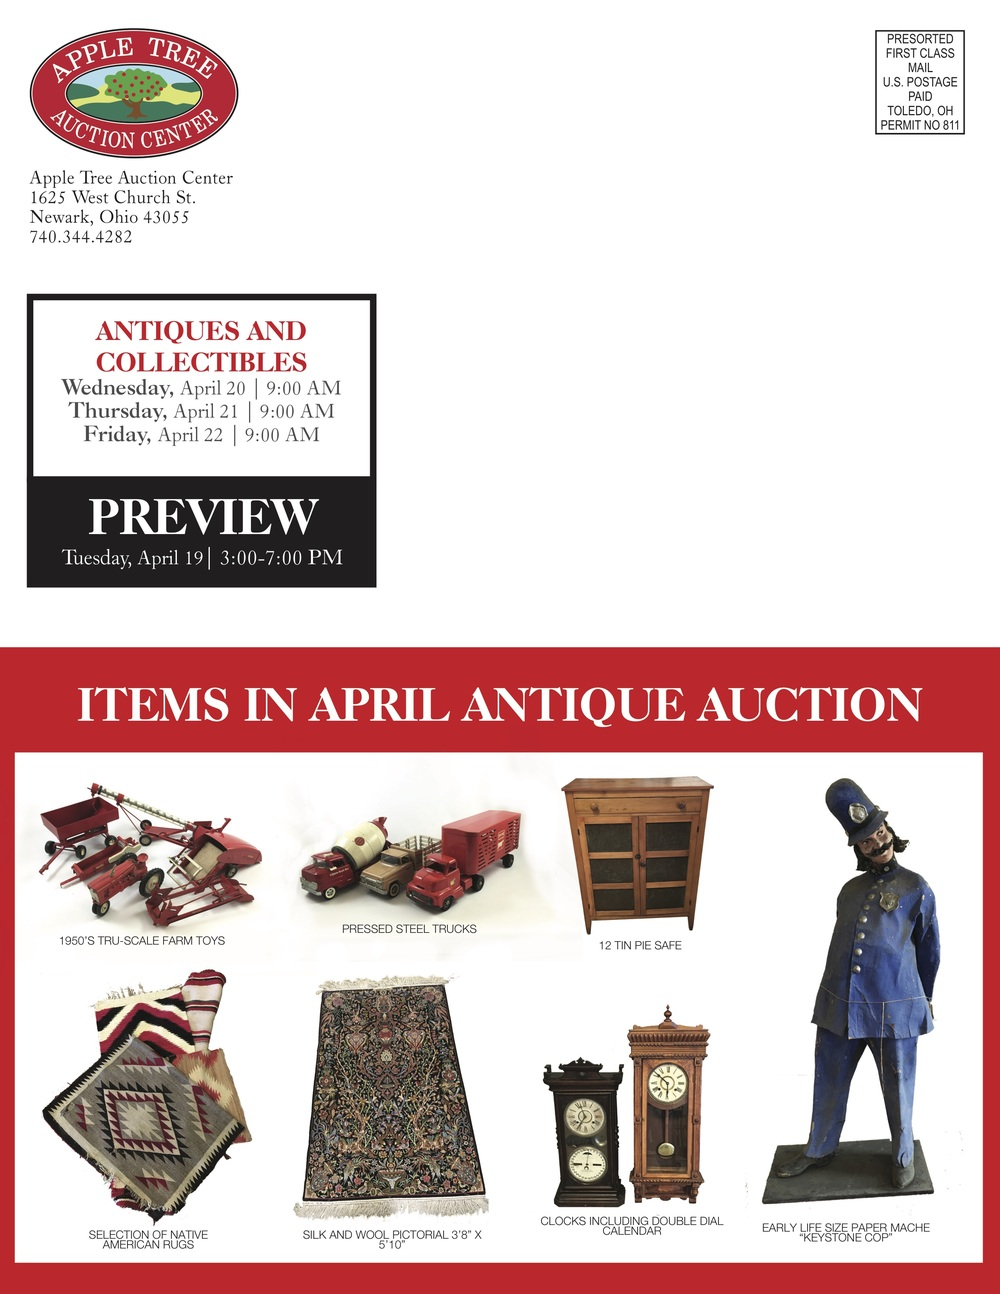 April Antique Flyer 16 high res_8.jpg